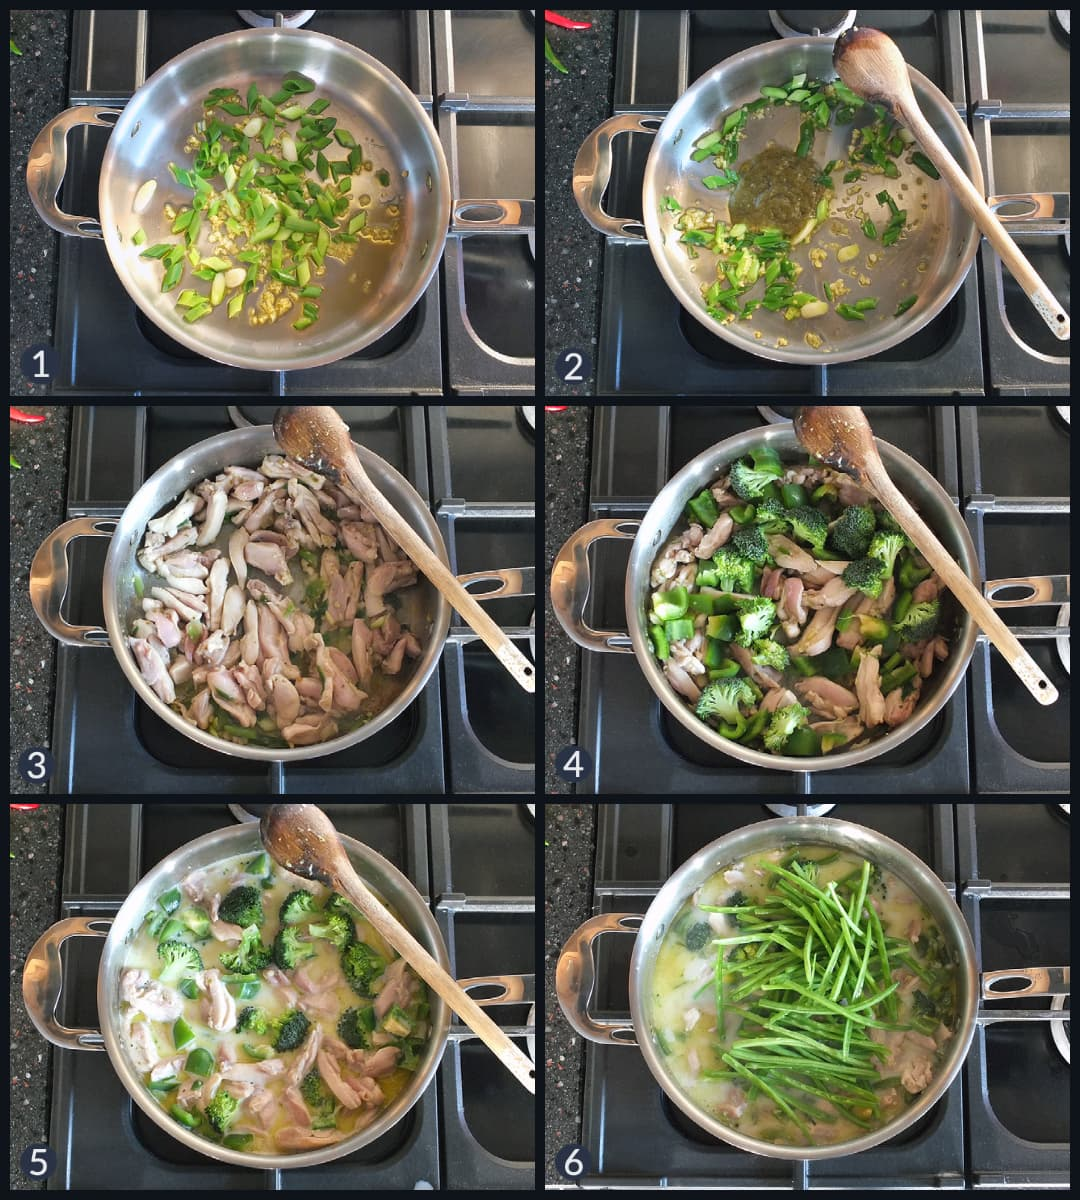 Six step collage showing how to make a Thai green curry from scratch. Images depict cooking steps on a Rangemaster stove top.